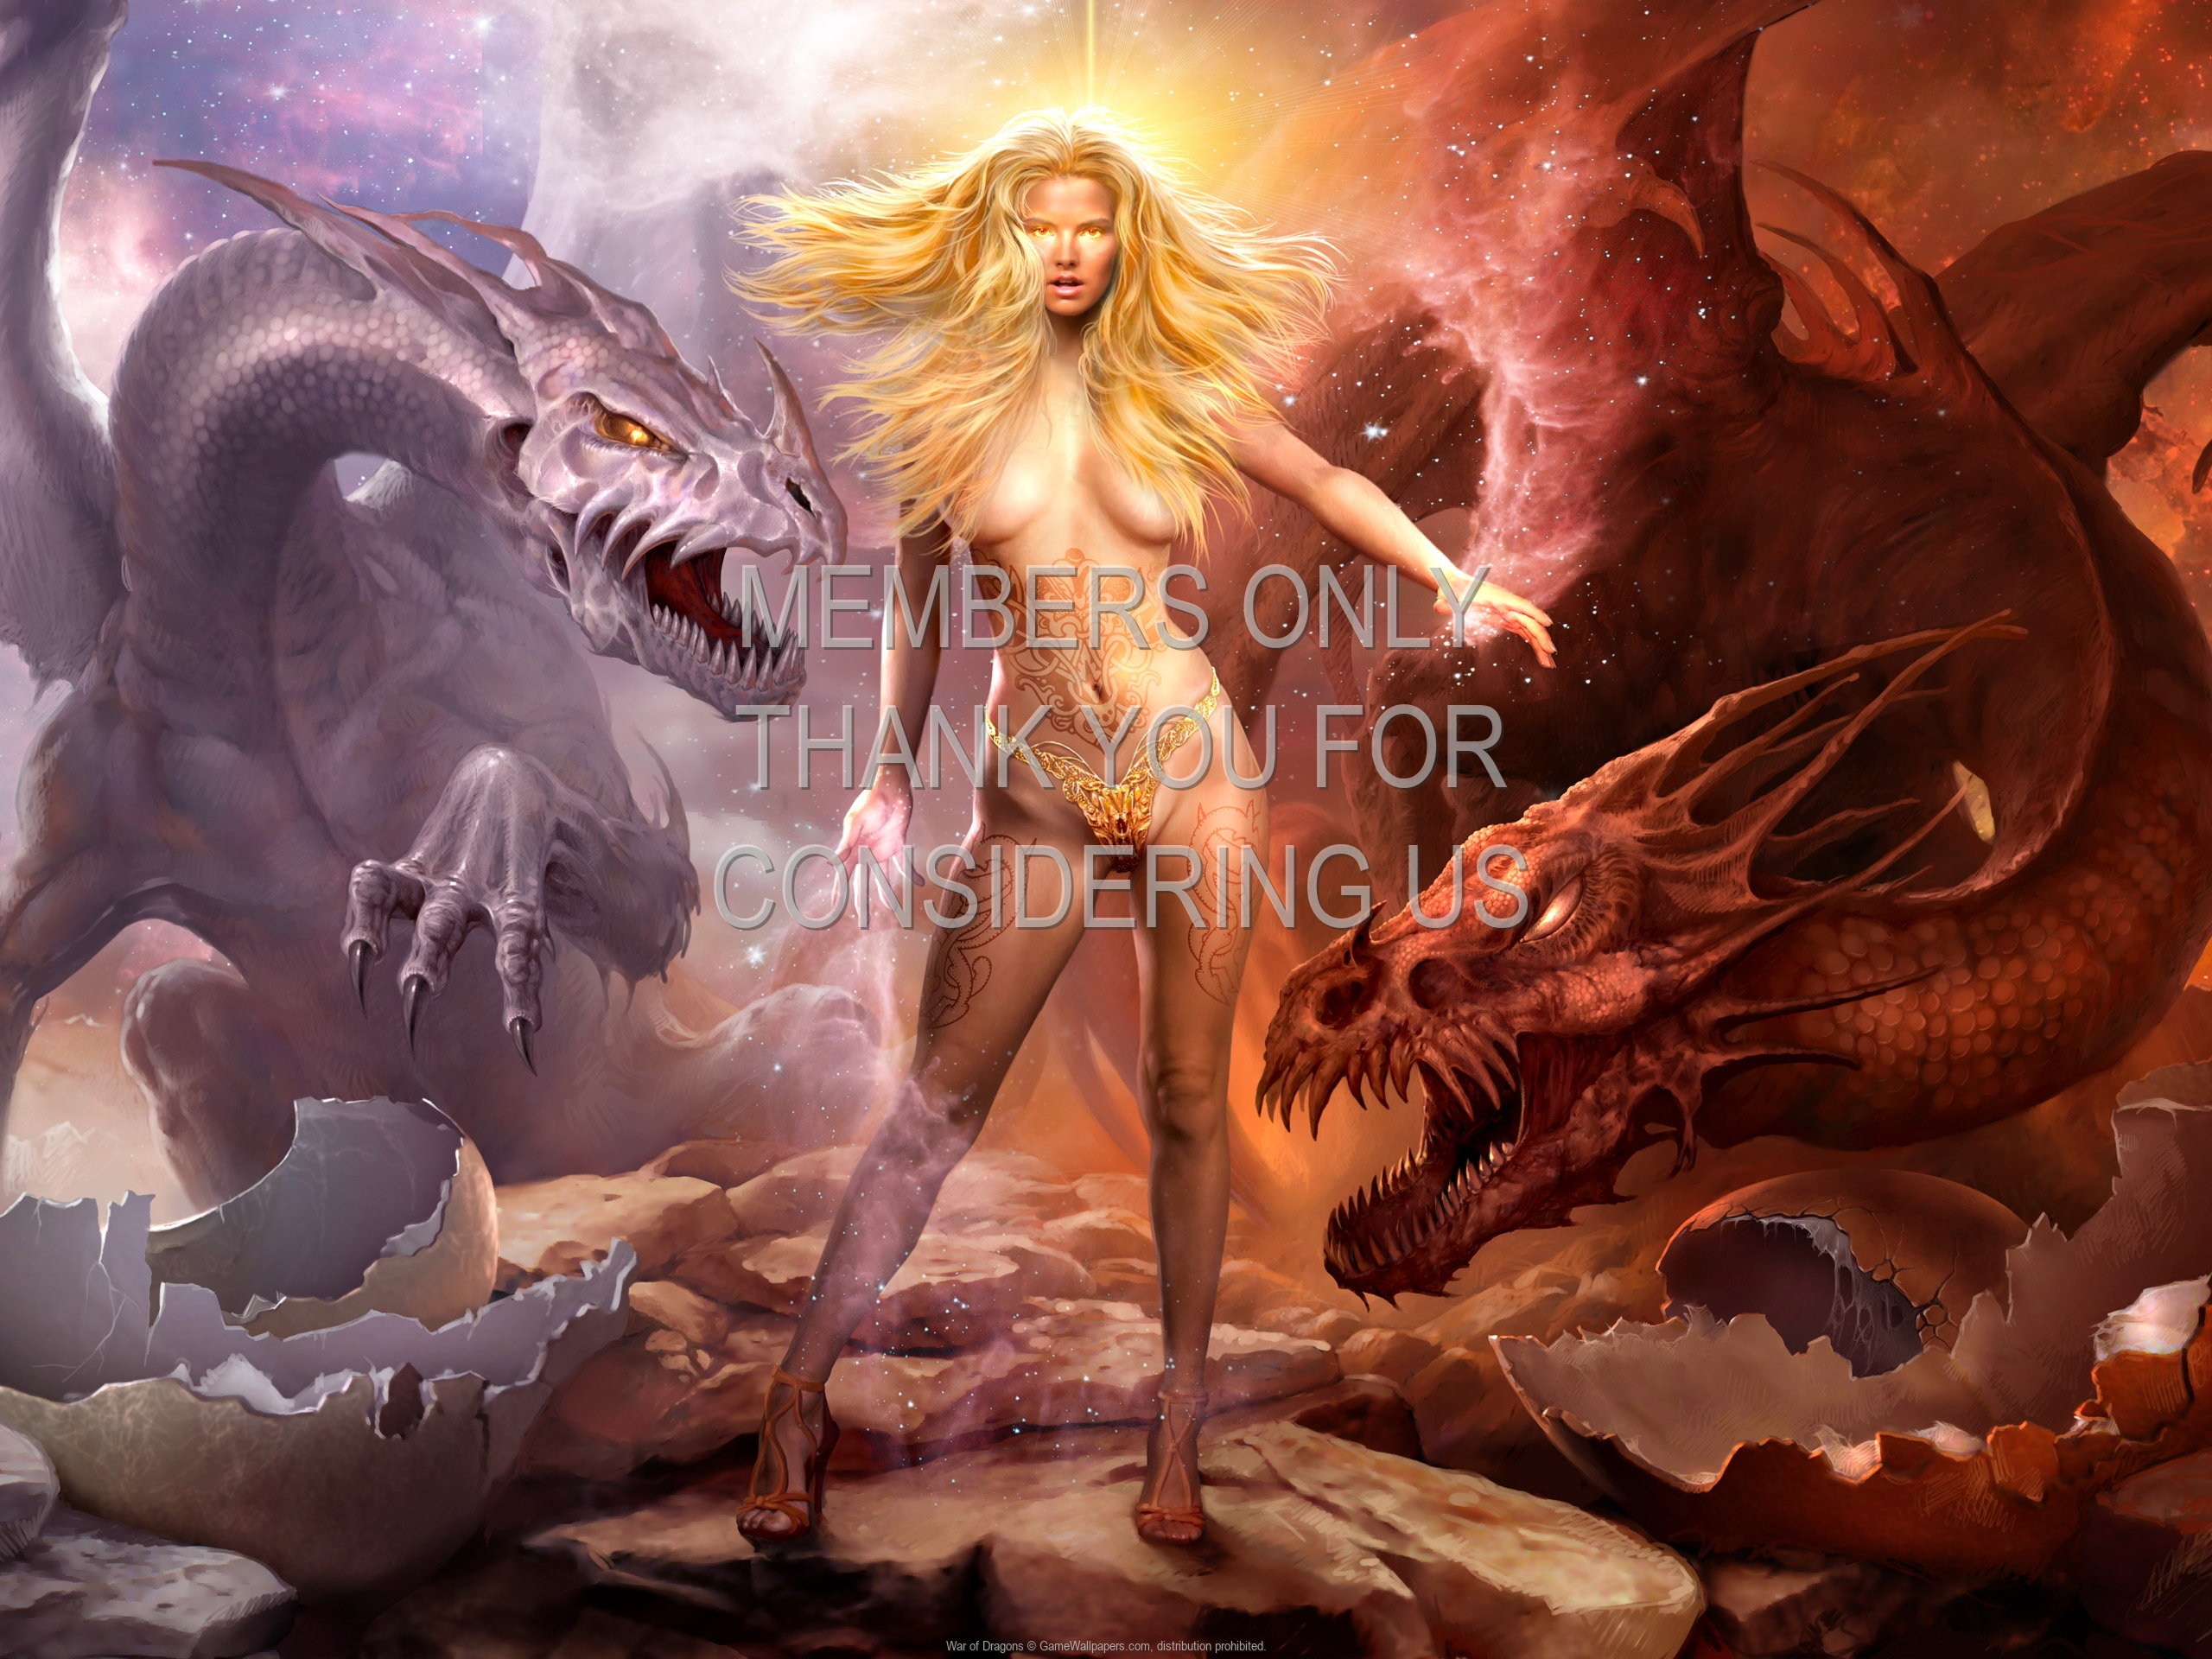 War of Dragons 1920x1080 Mobiele achtergrond 01